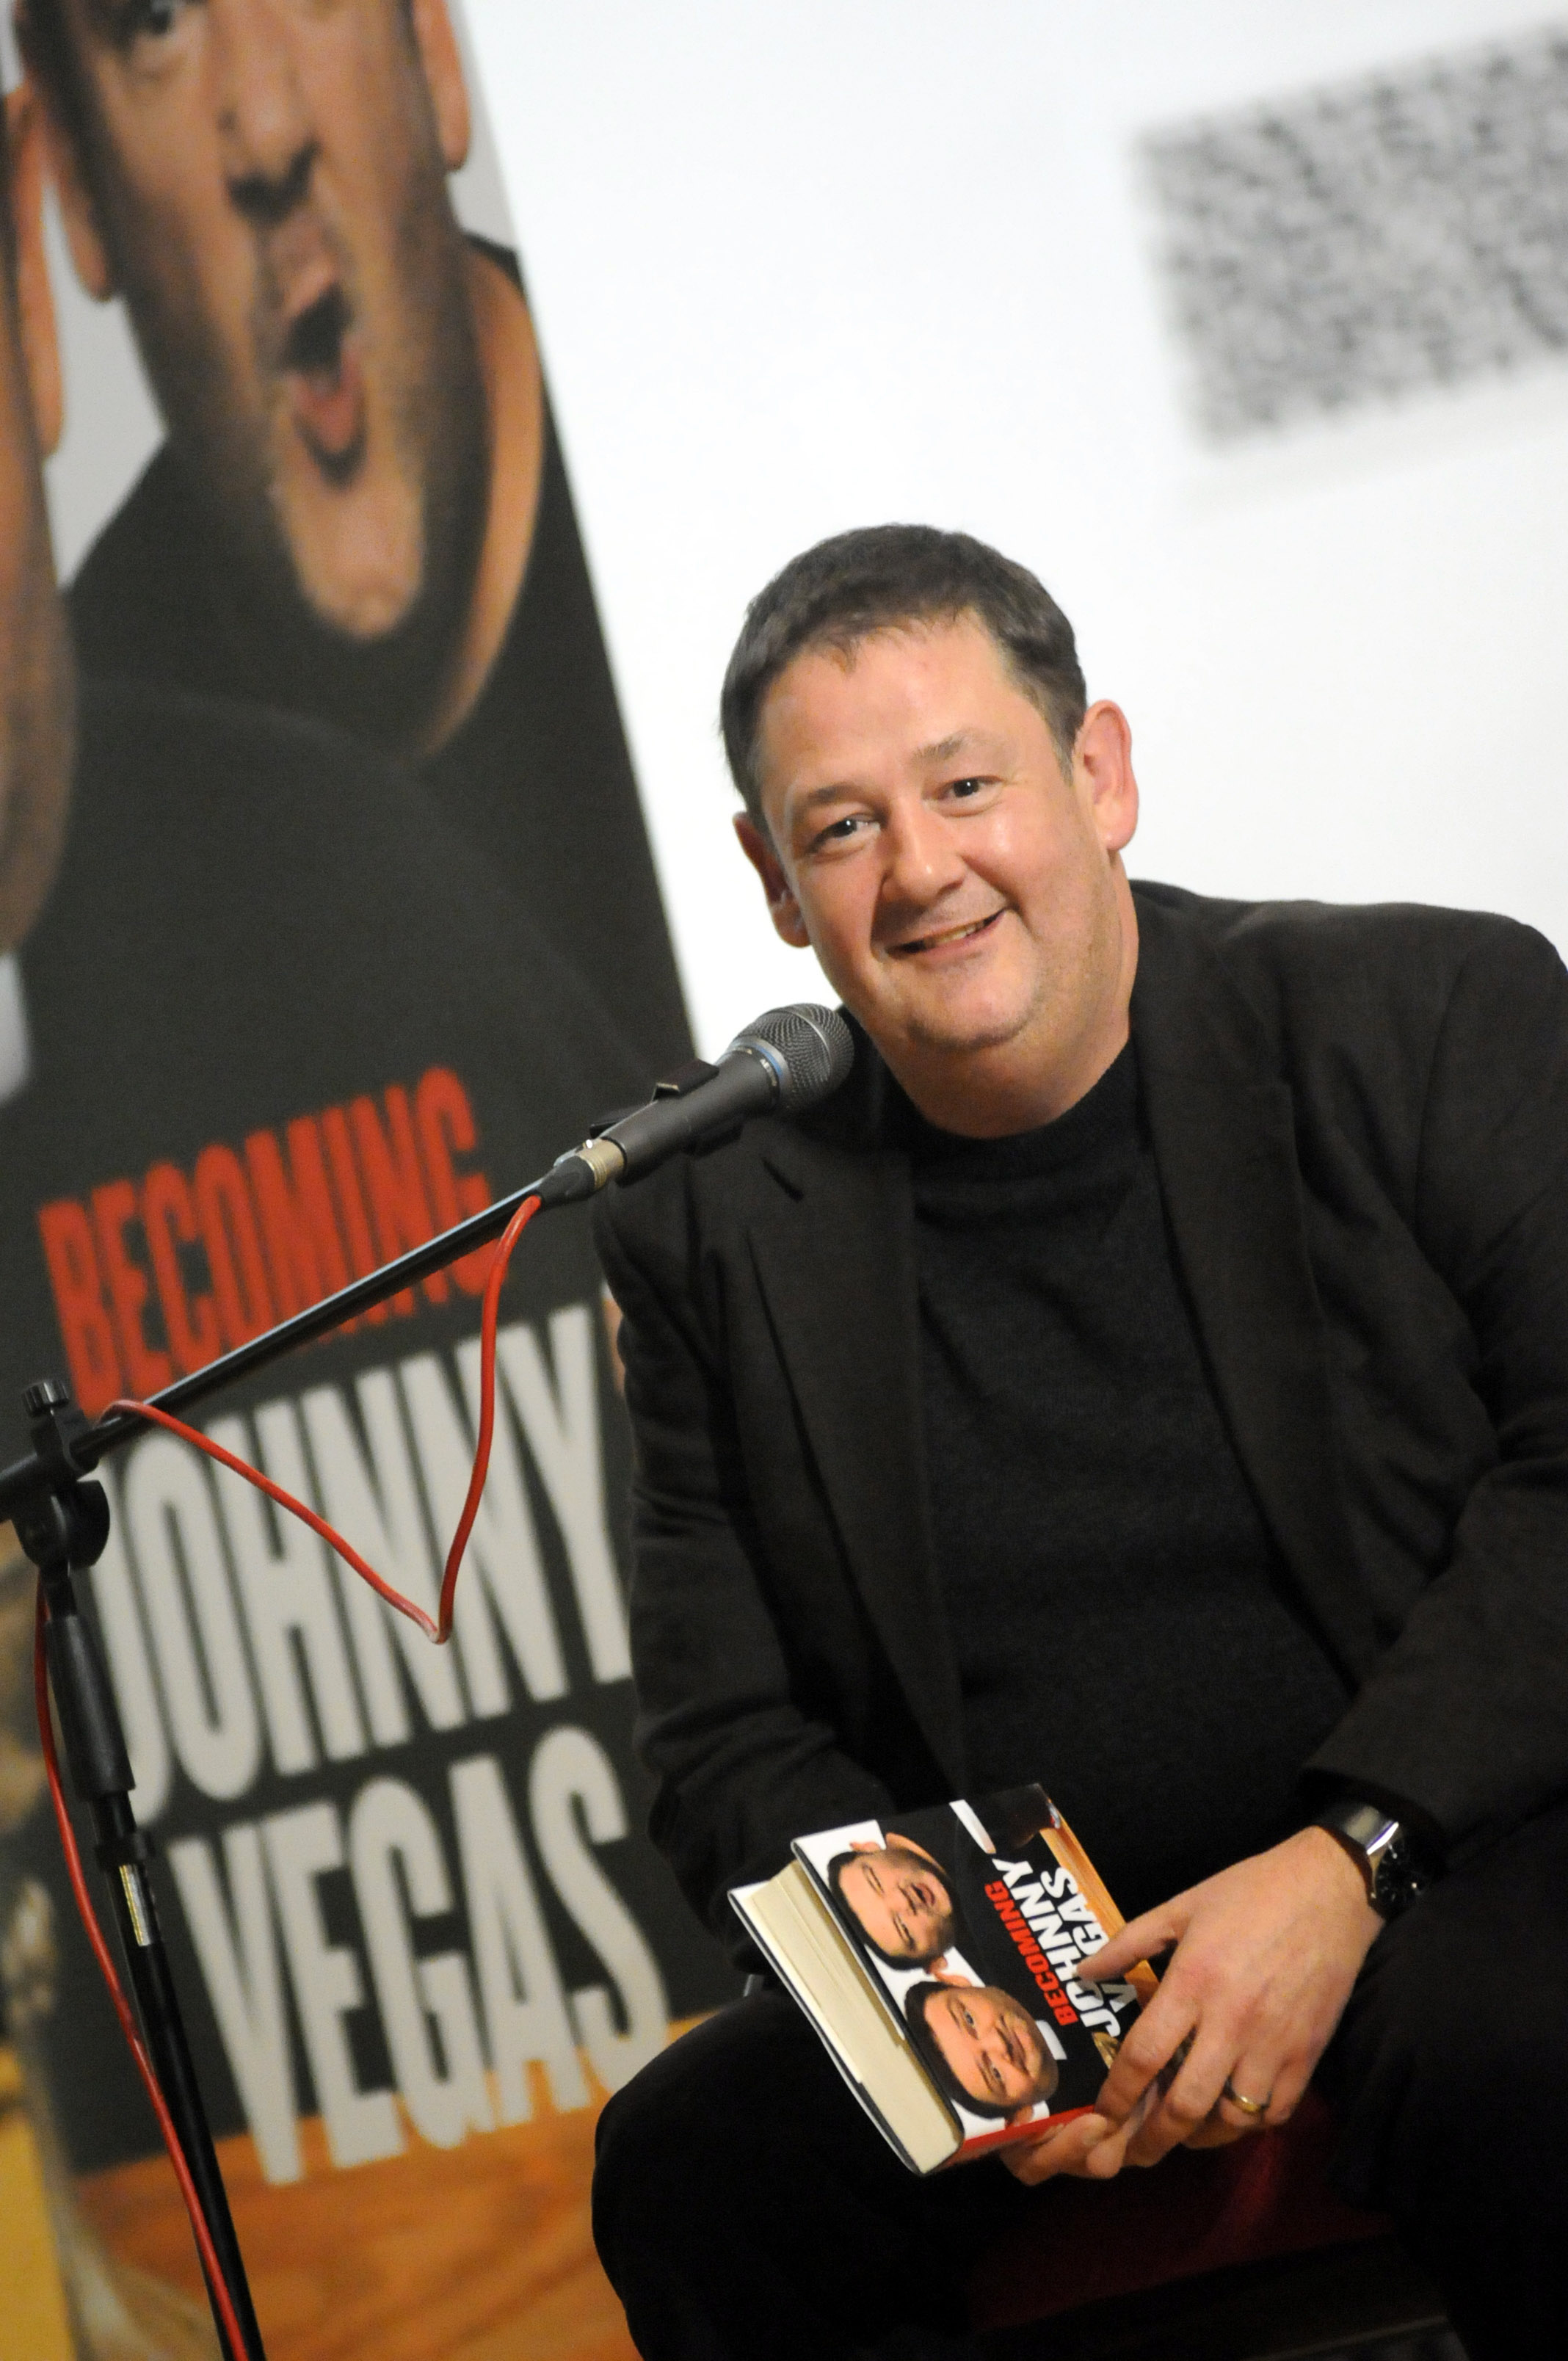 Johnny Vegas is to receive an honorary doctorate